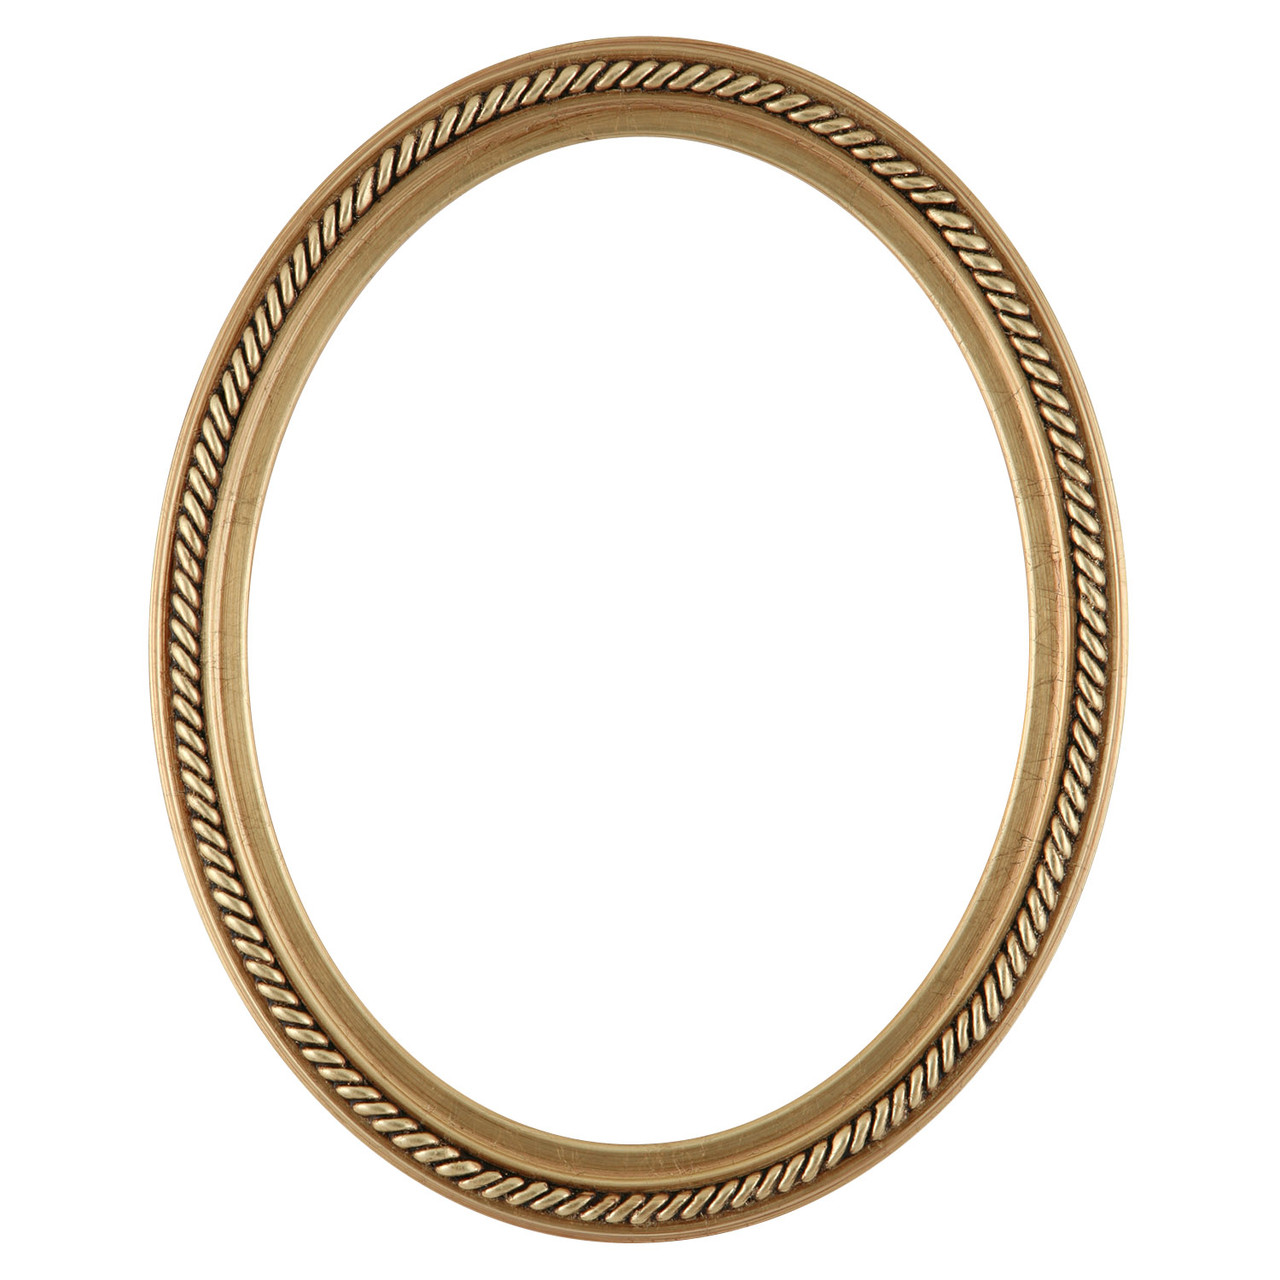 Oval Frame in Gold Leaf Finish Braided Rope Decals on ...